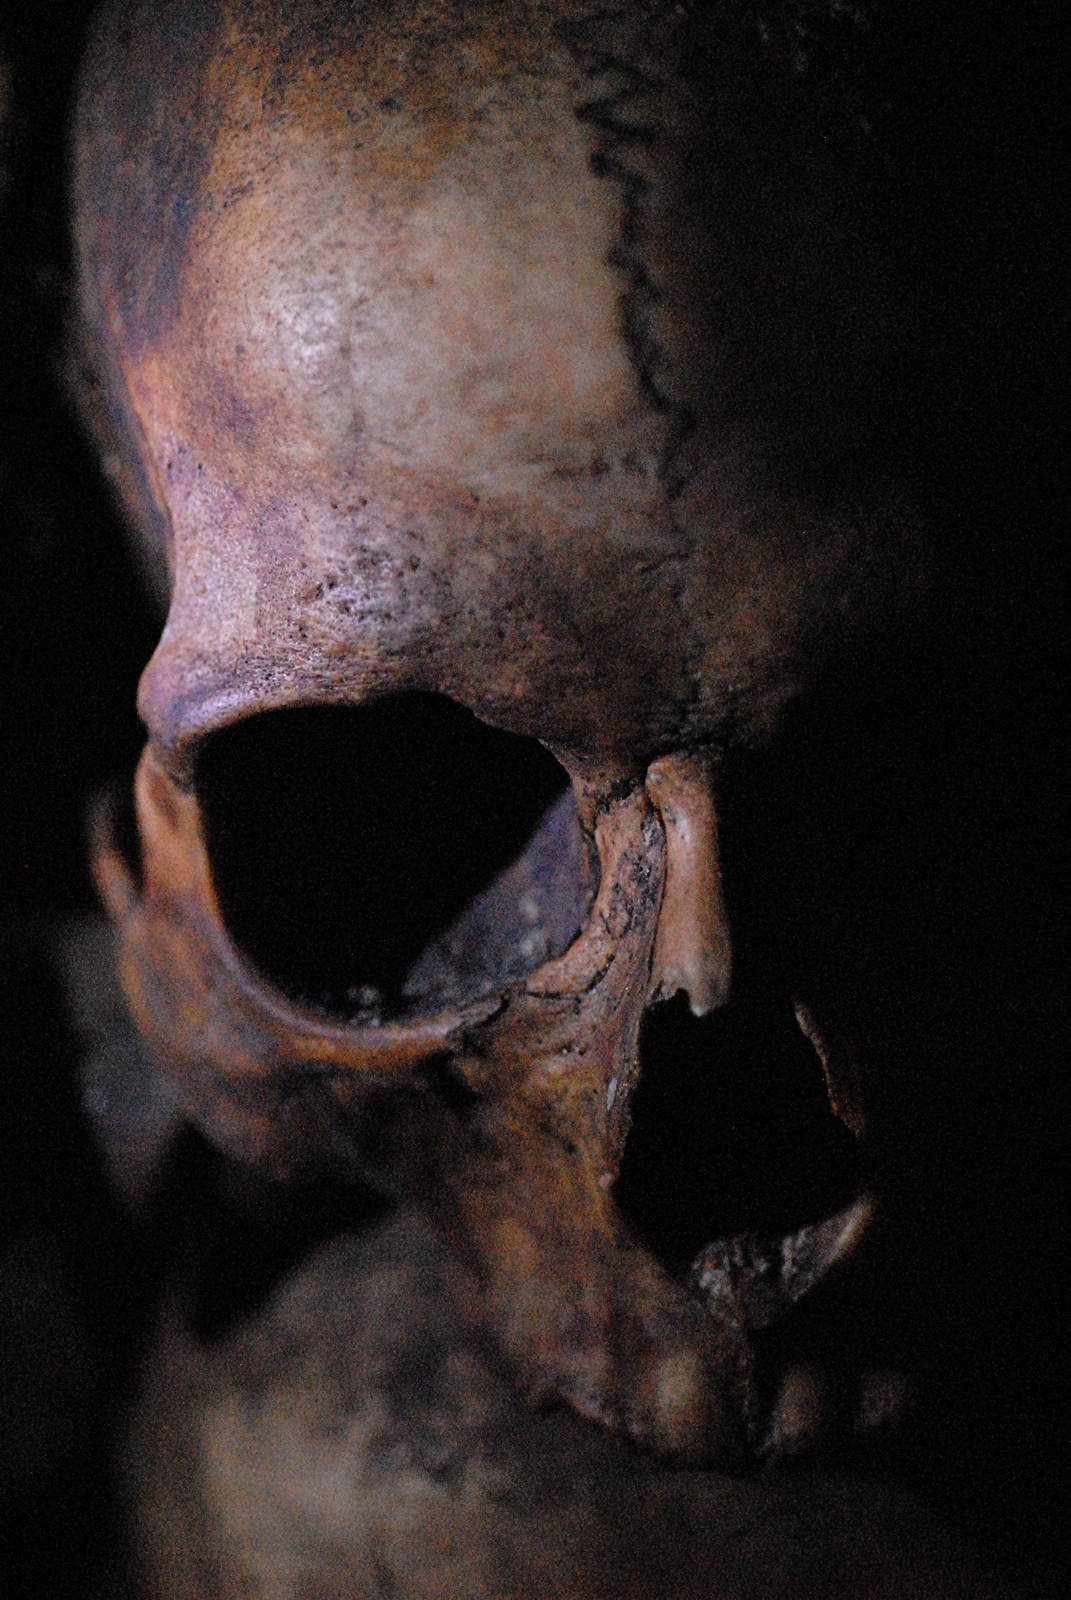 Skull, Skeleton, Skulls, Terror, Human, HQ Photo